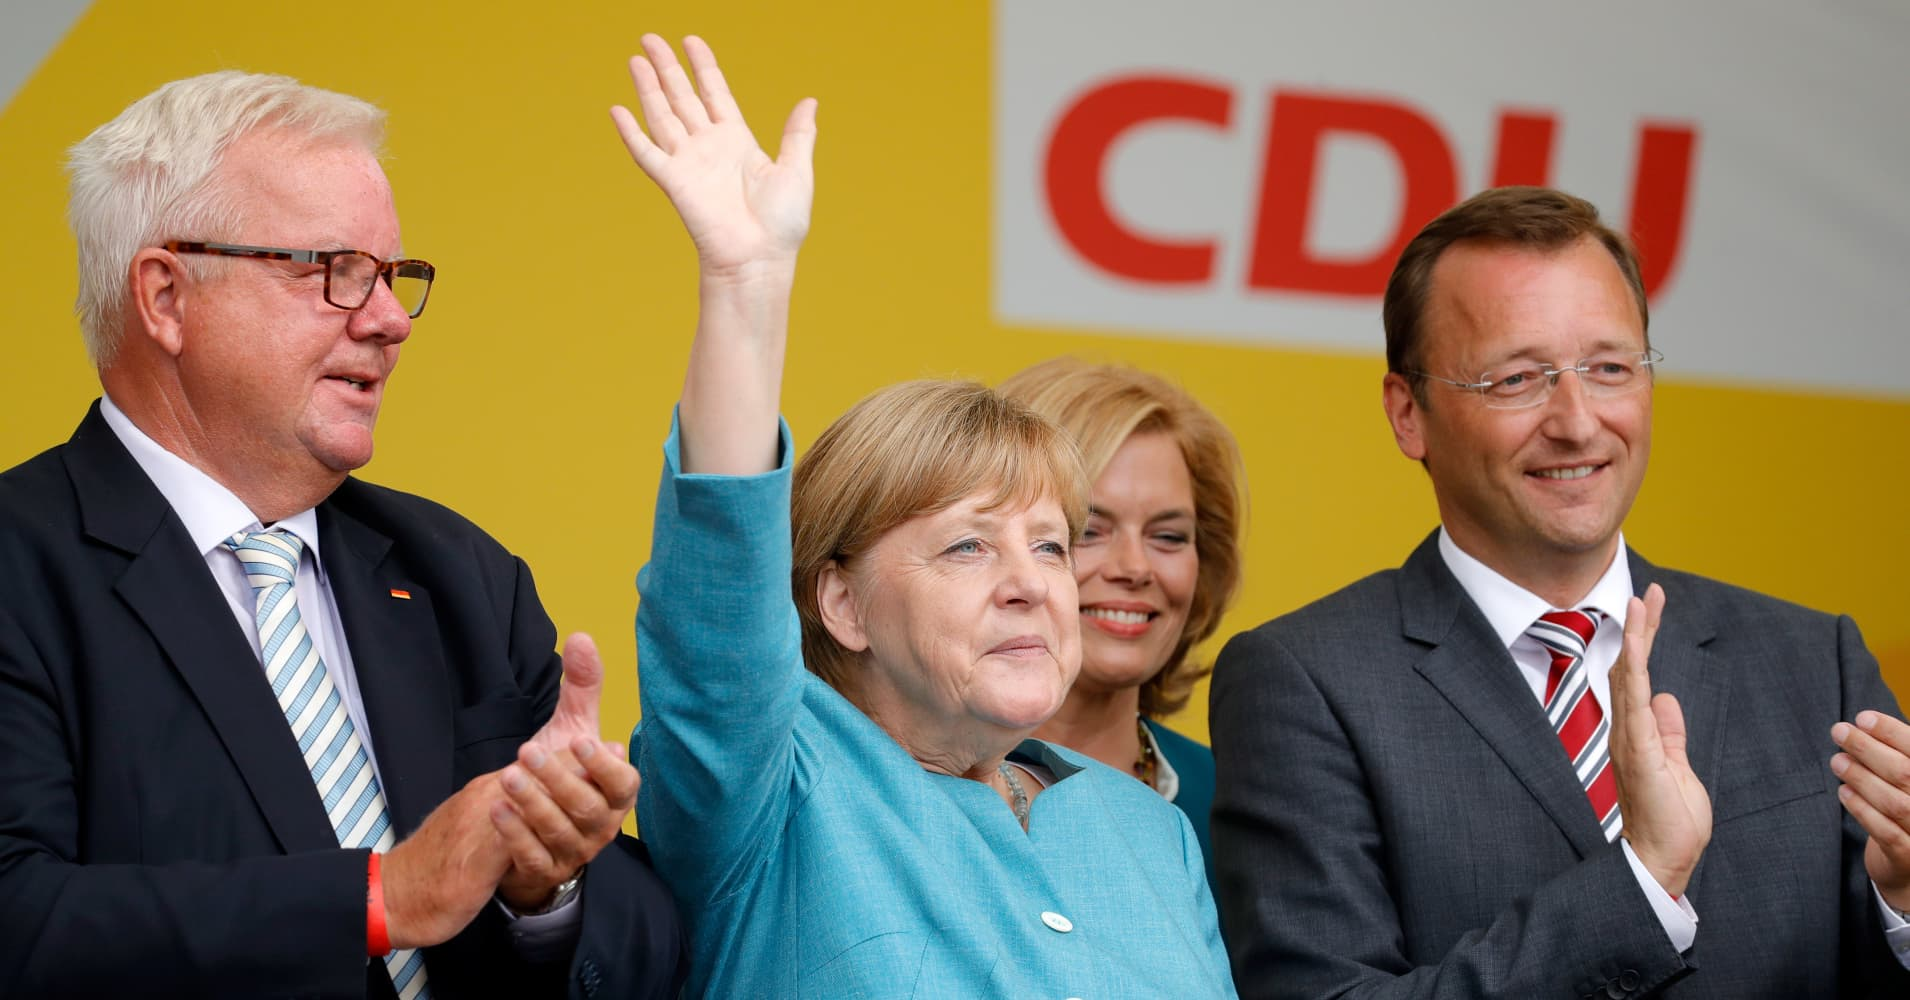 Germany Election Heres What Happens Next